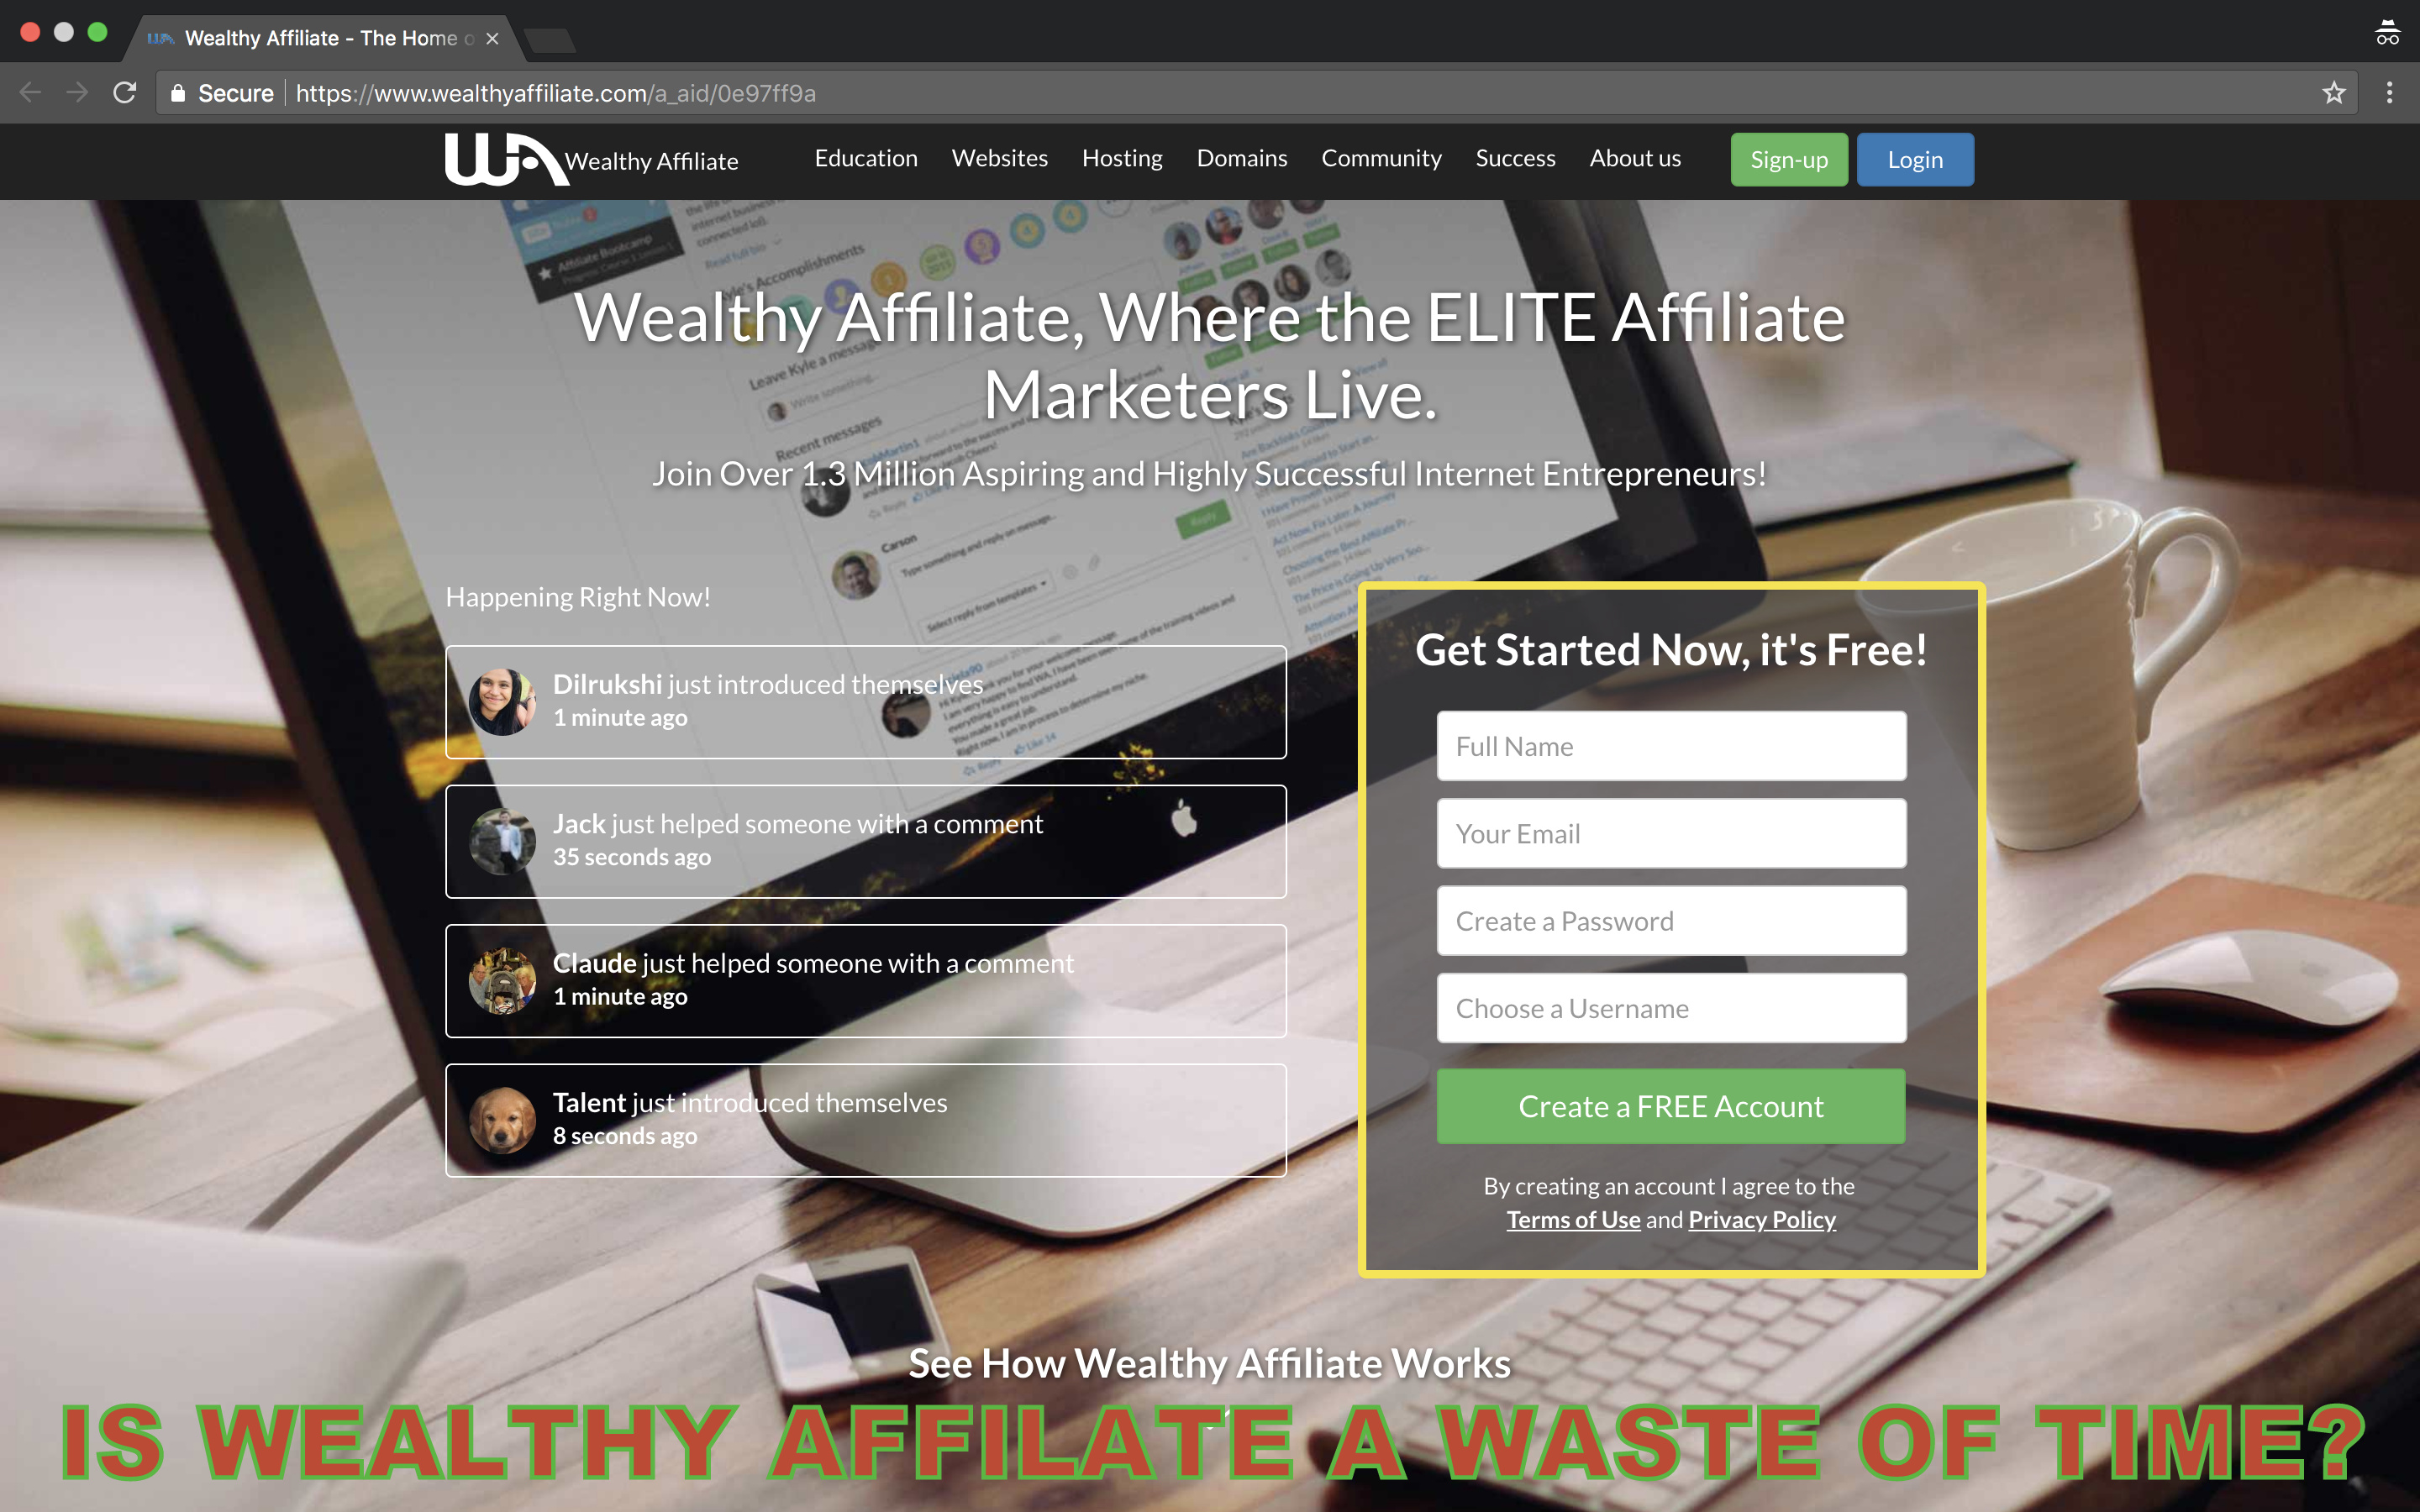 Is Wealthy Affiliate a Waste of Time